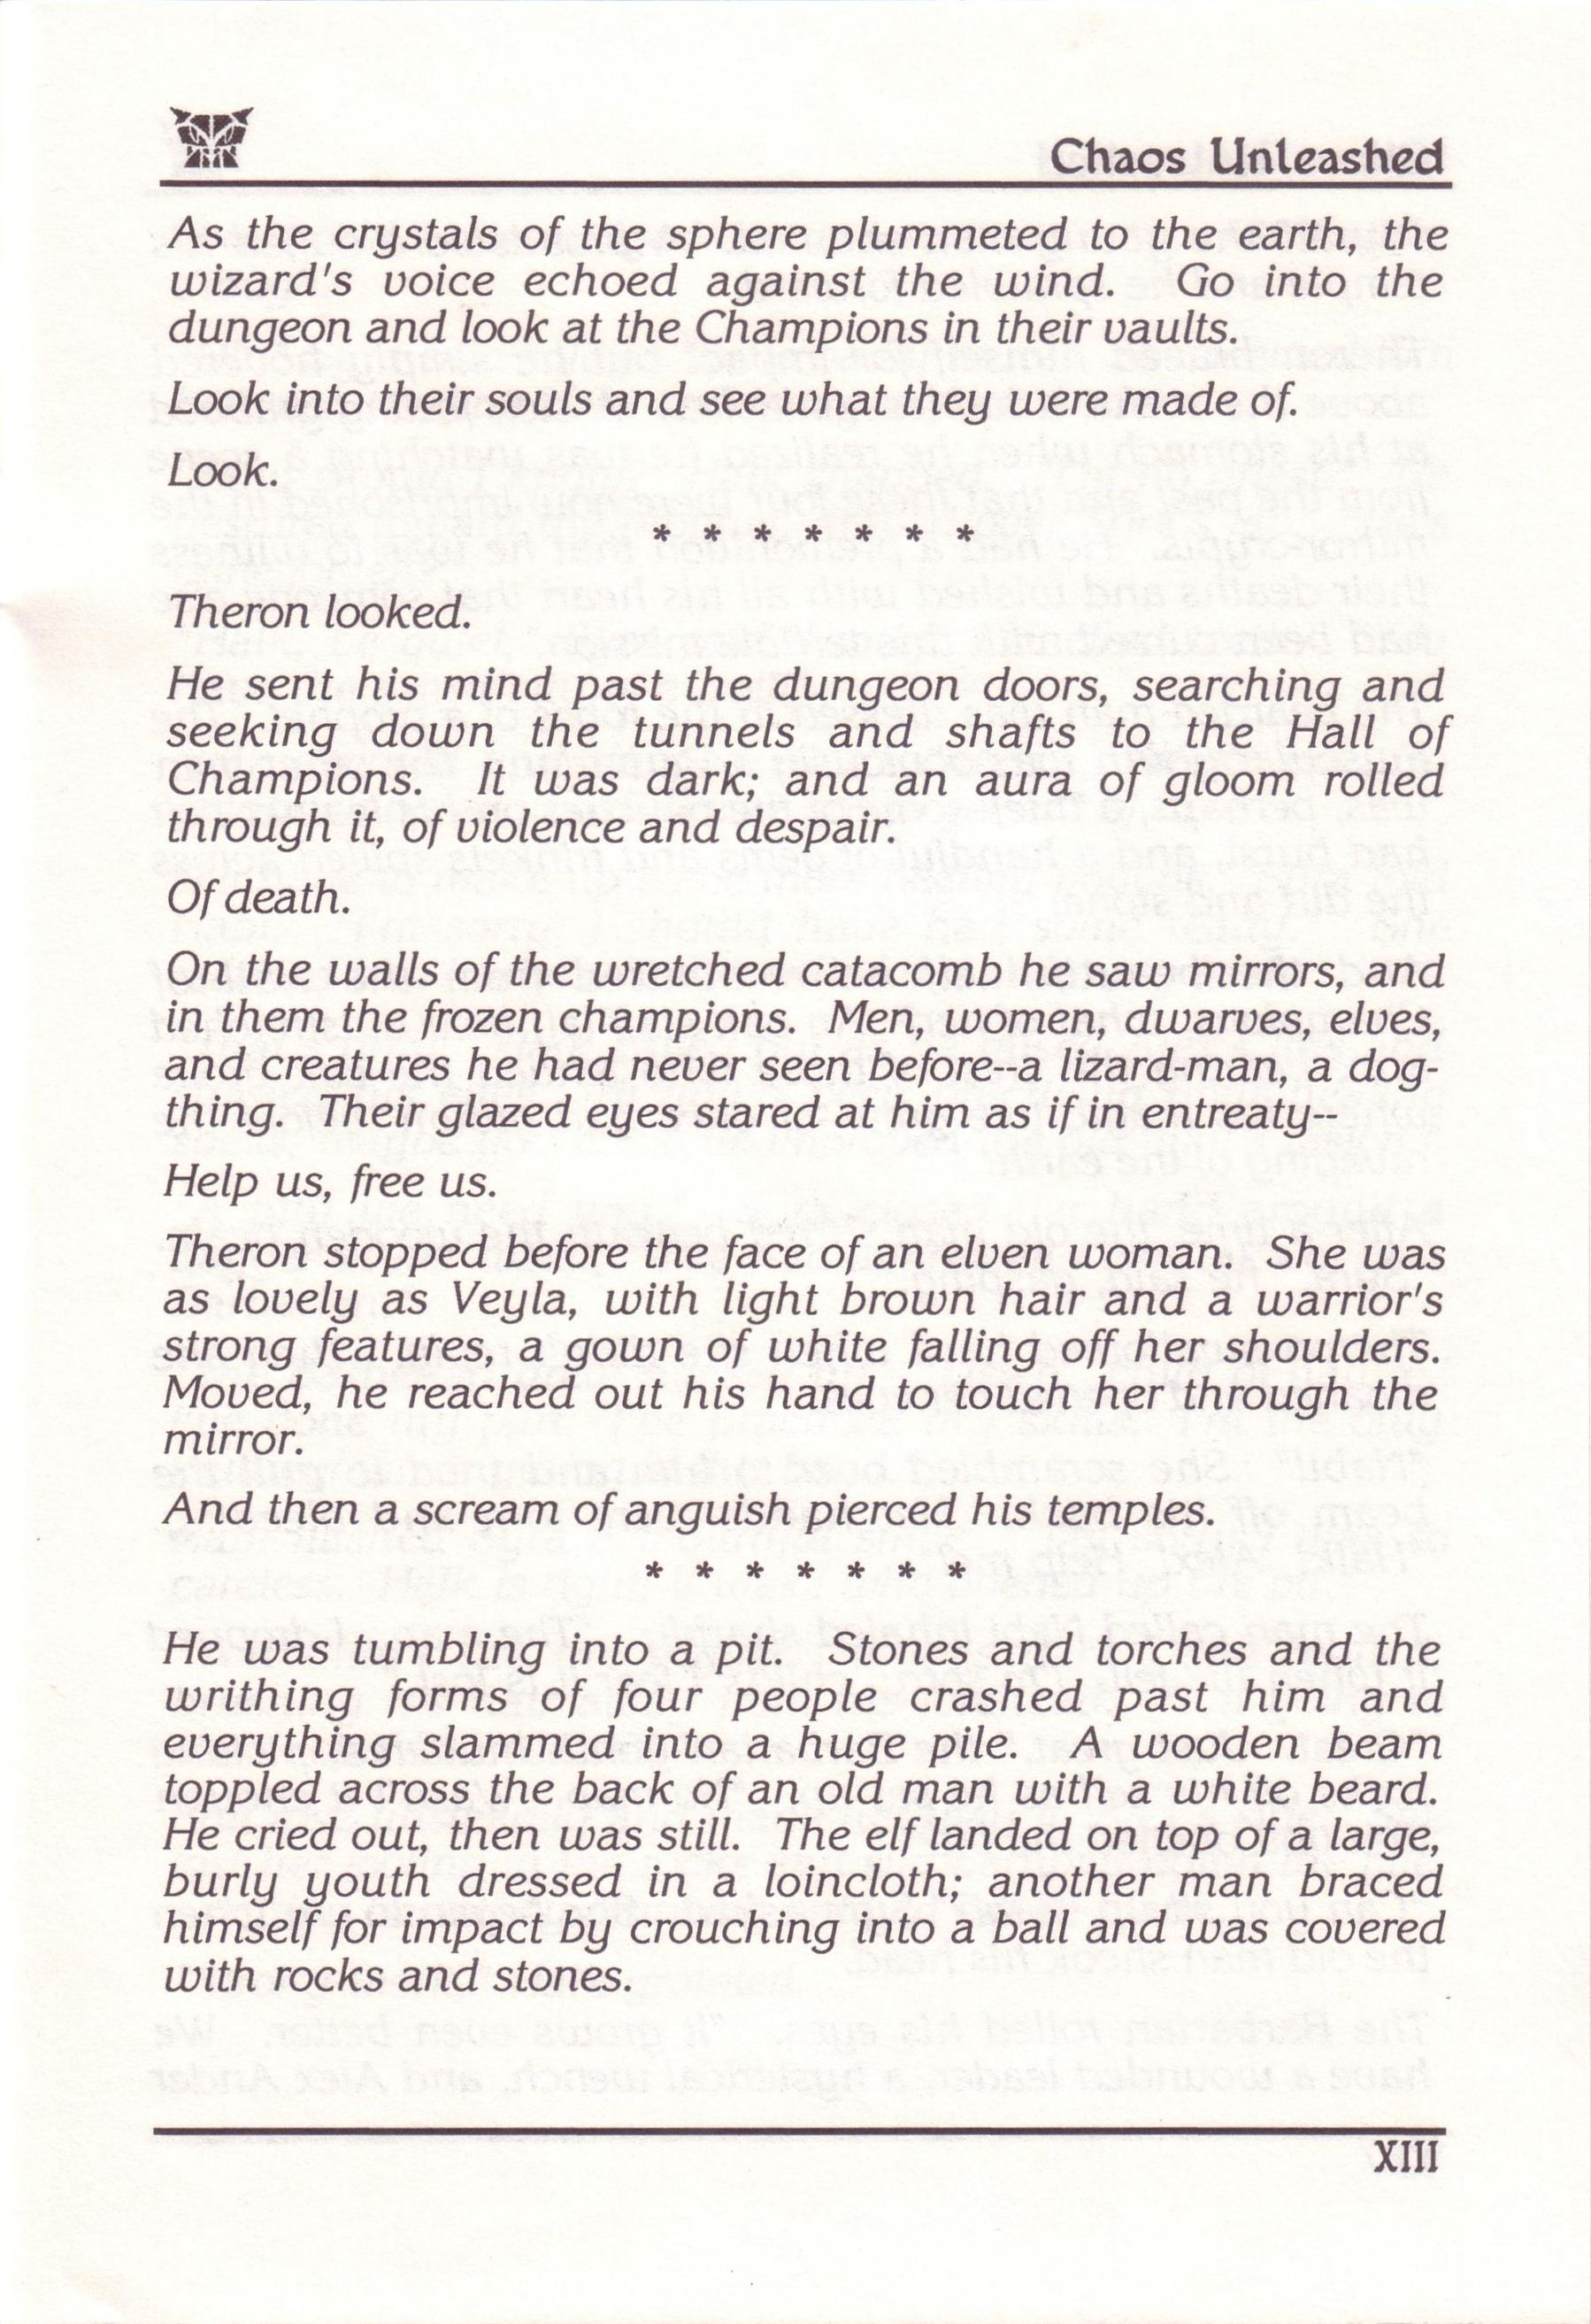 Dungeon Master for PC with FTL Sound Adapter (US Release) - Manual Page 19